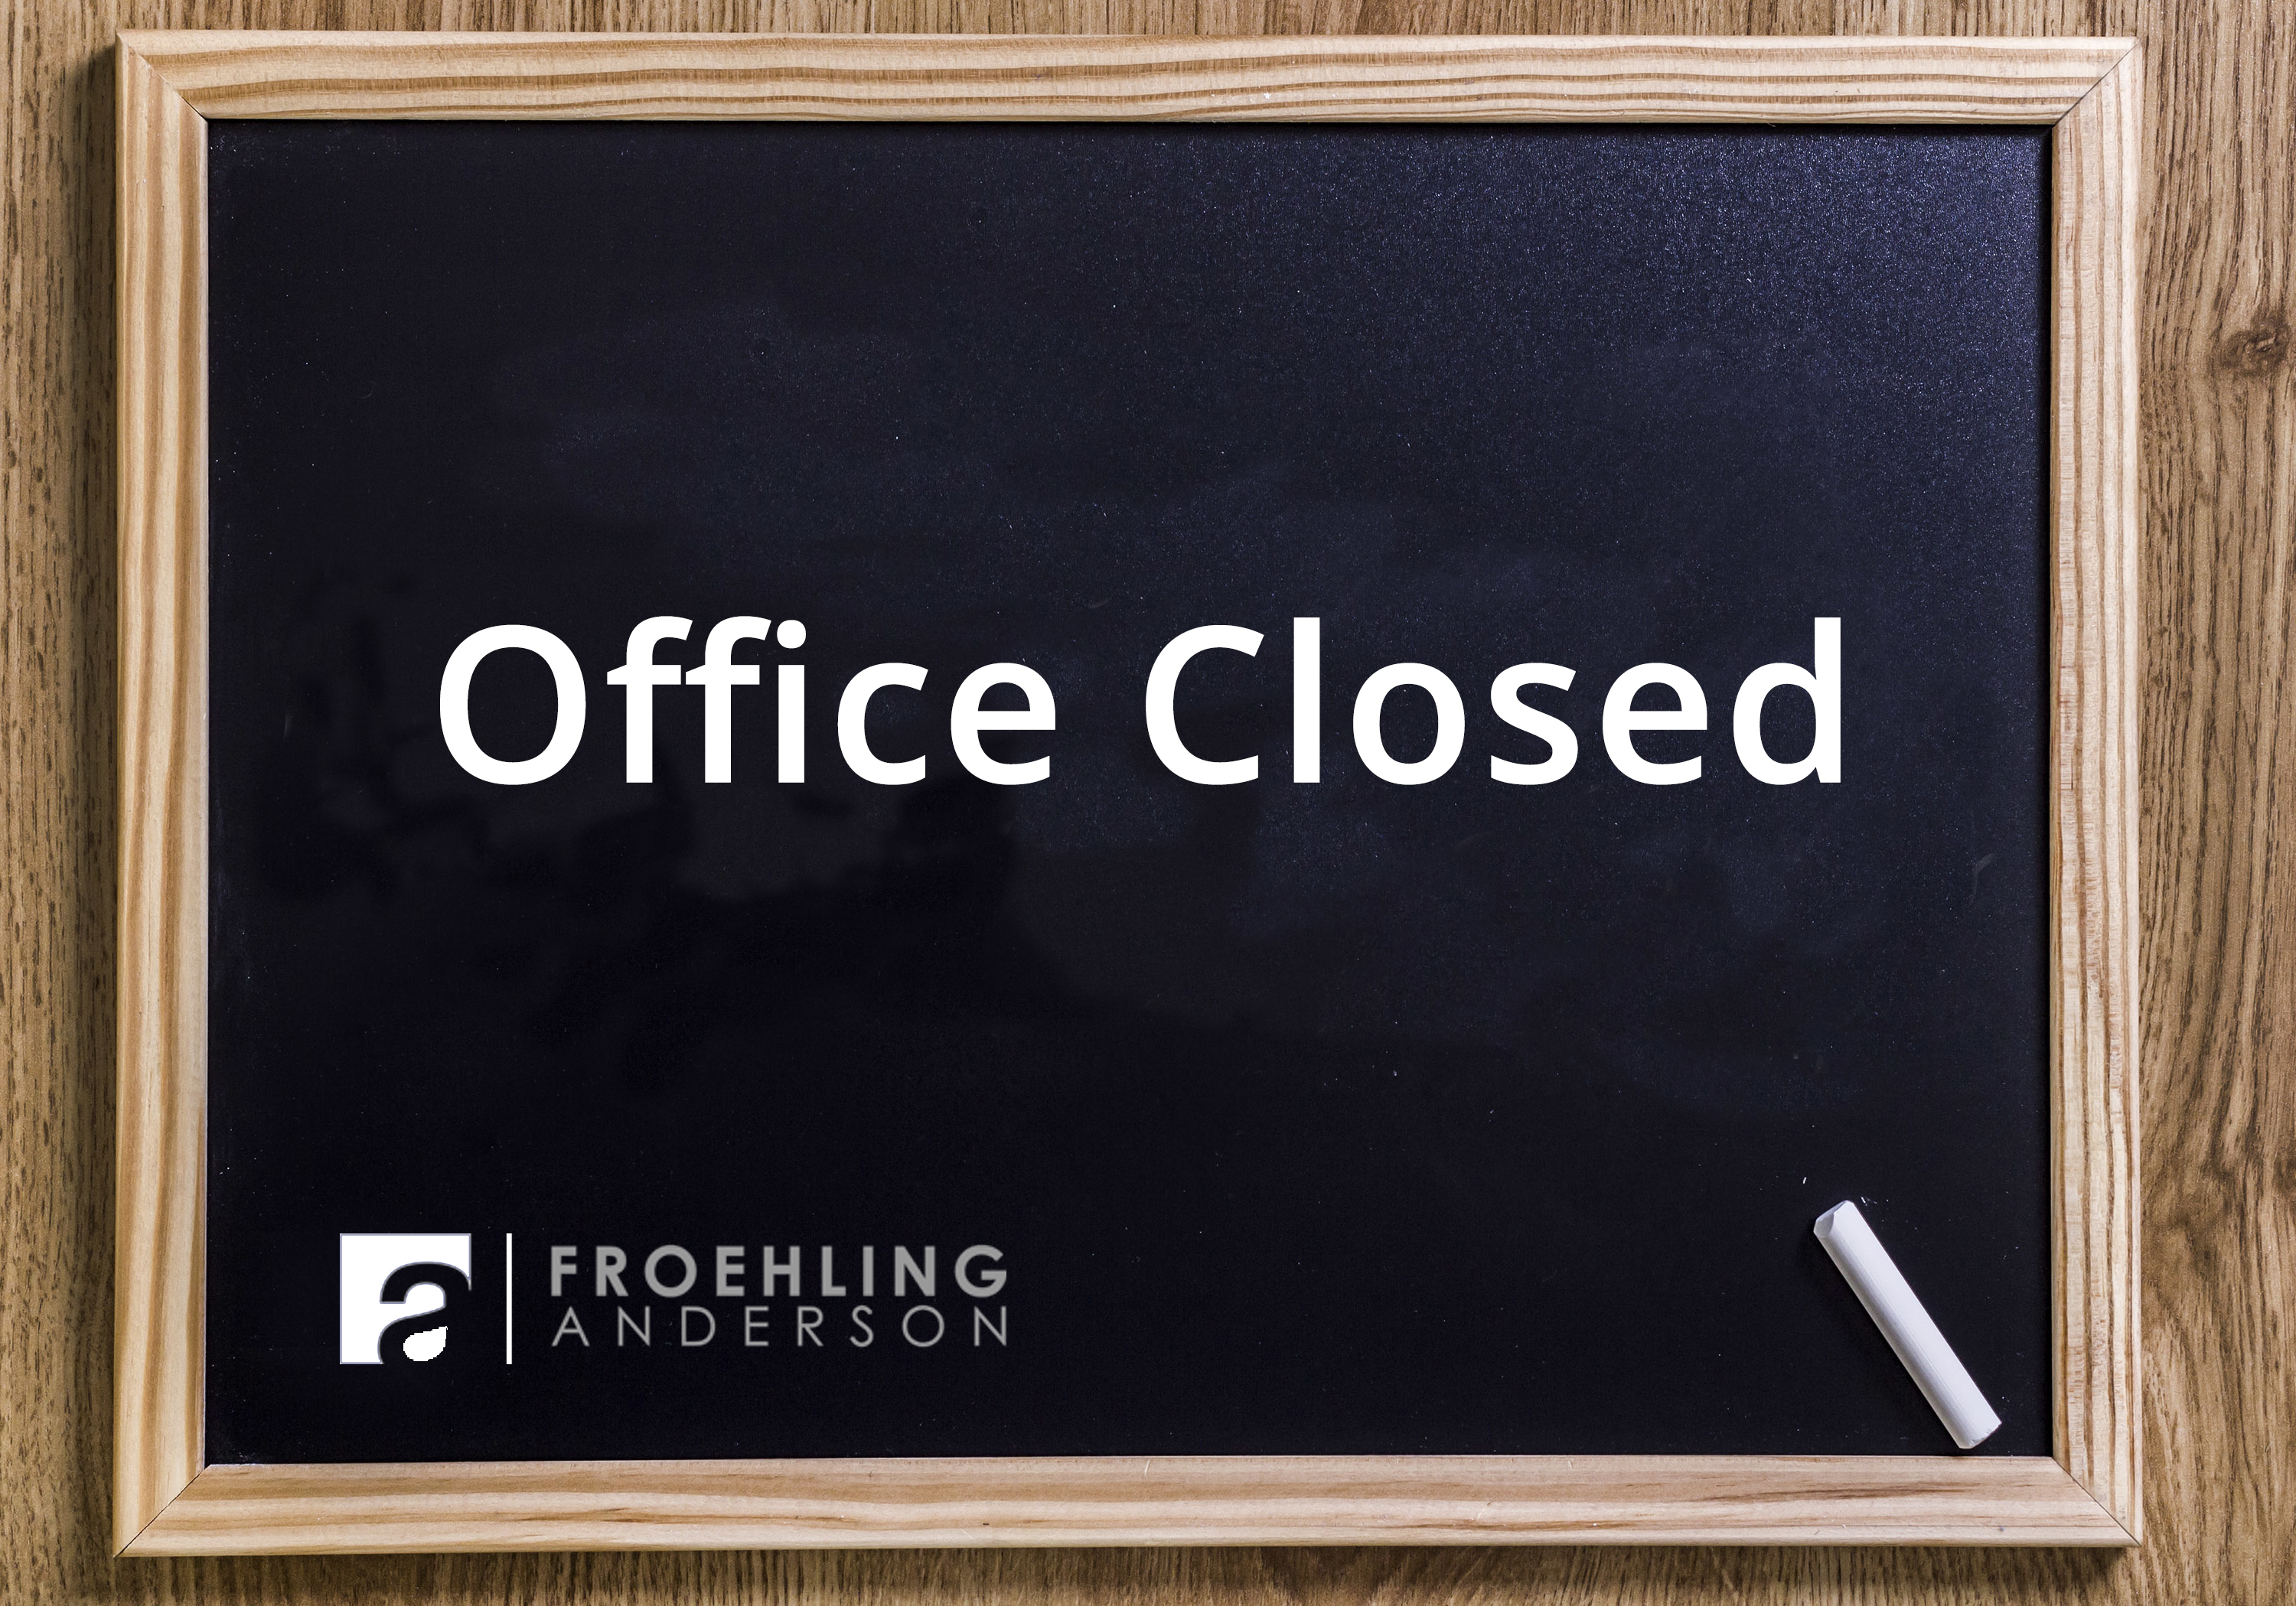 Office Closed chalkboard sign